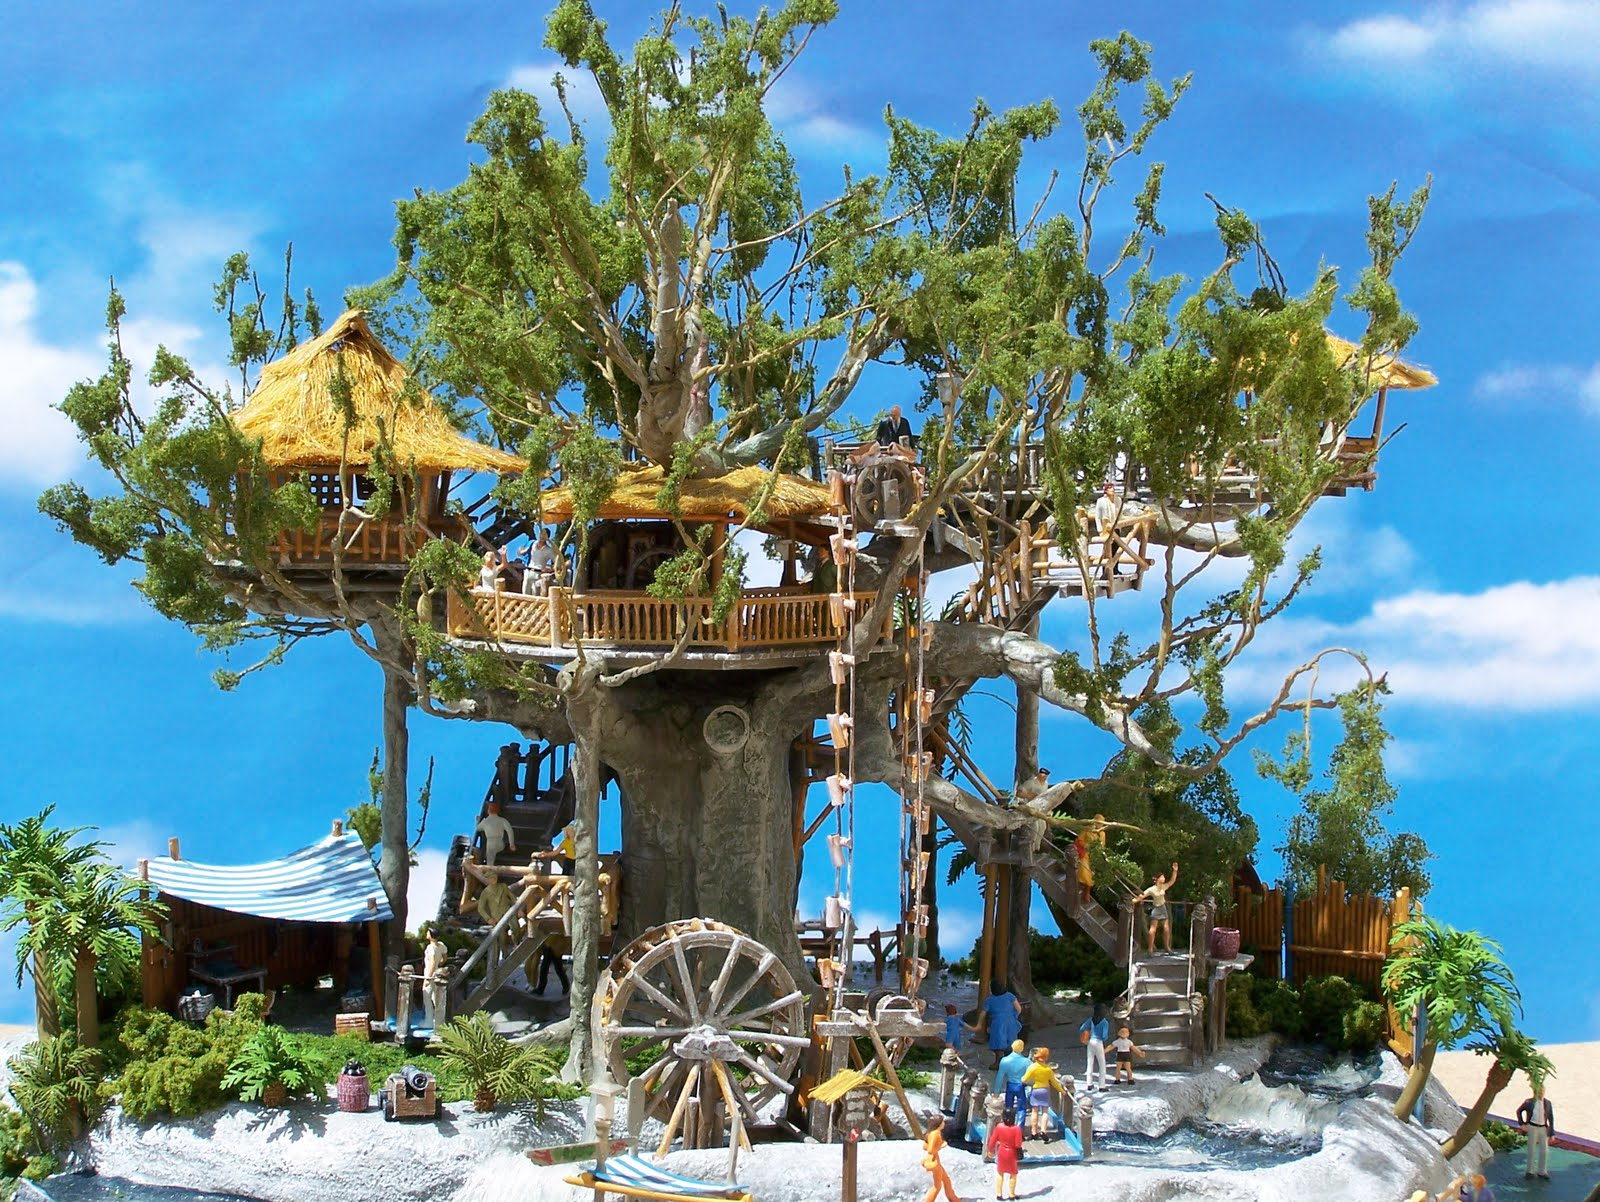 Swiss Family Robinson Treehouse Model